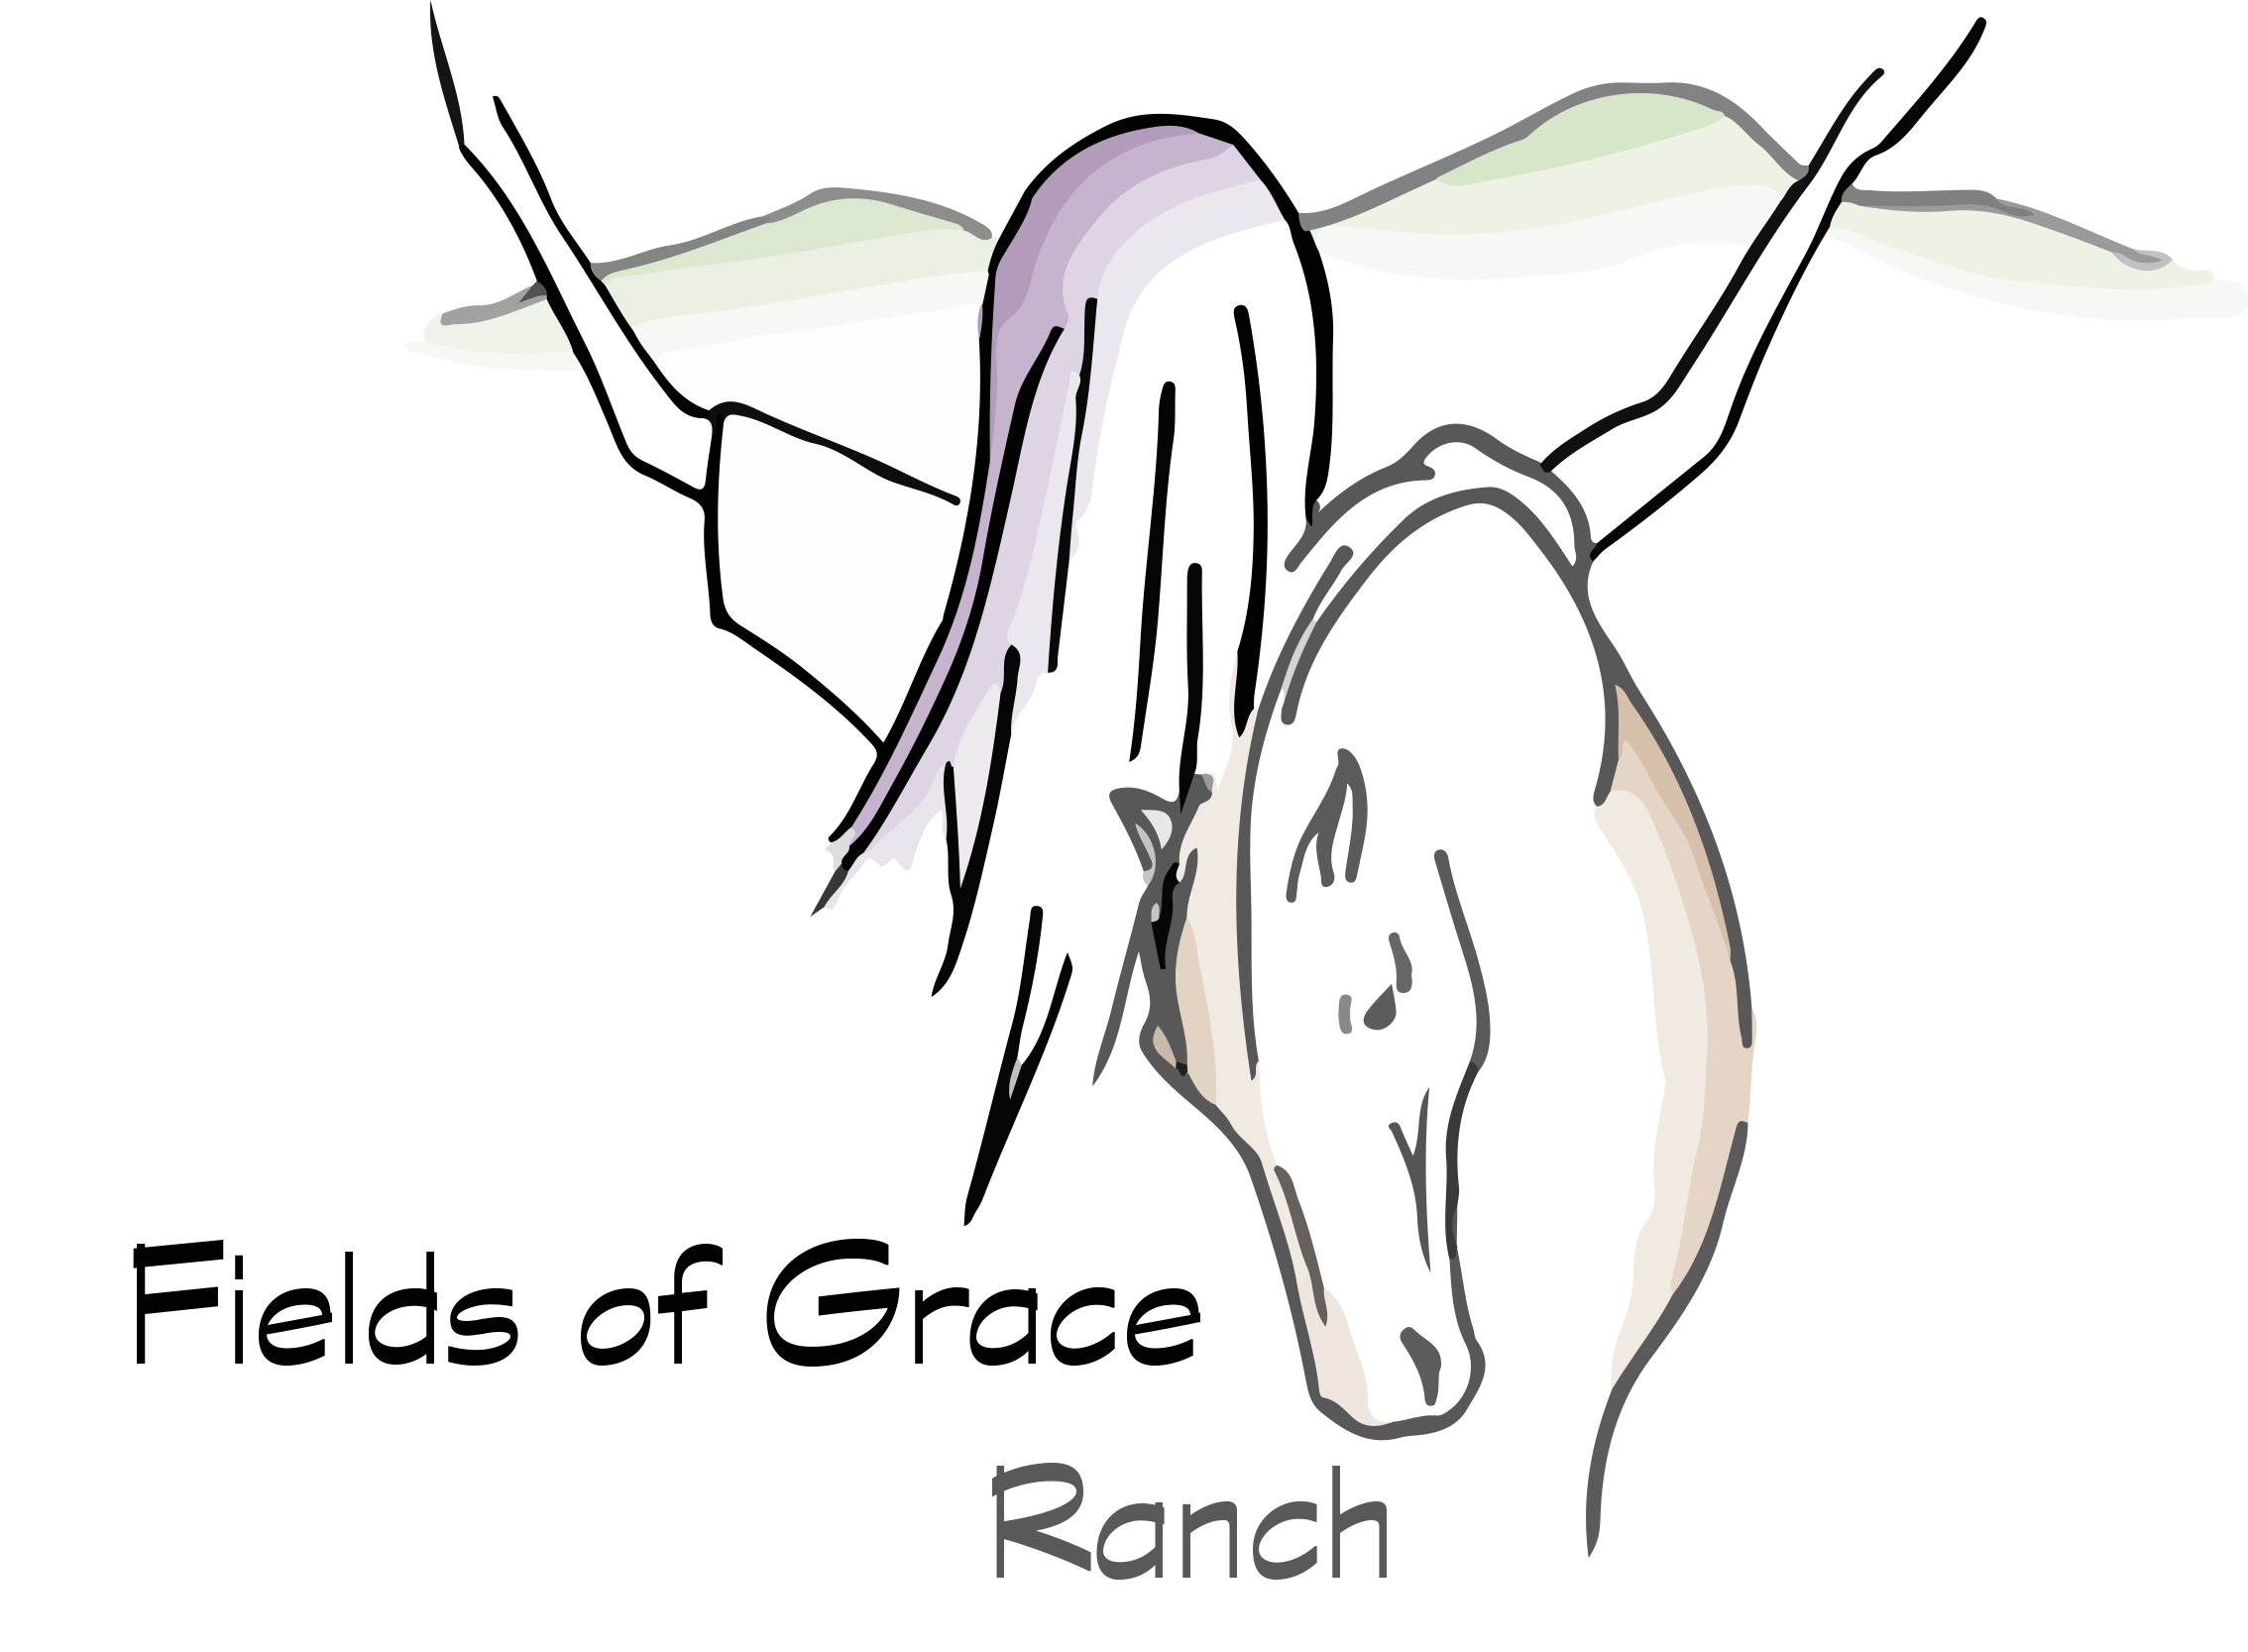 fields of grace ranch